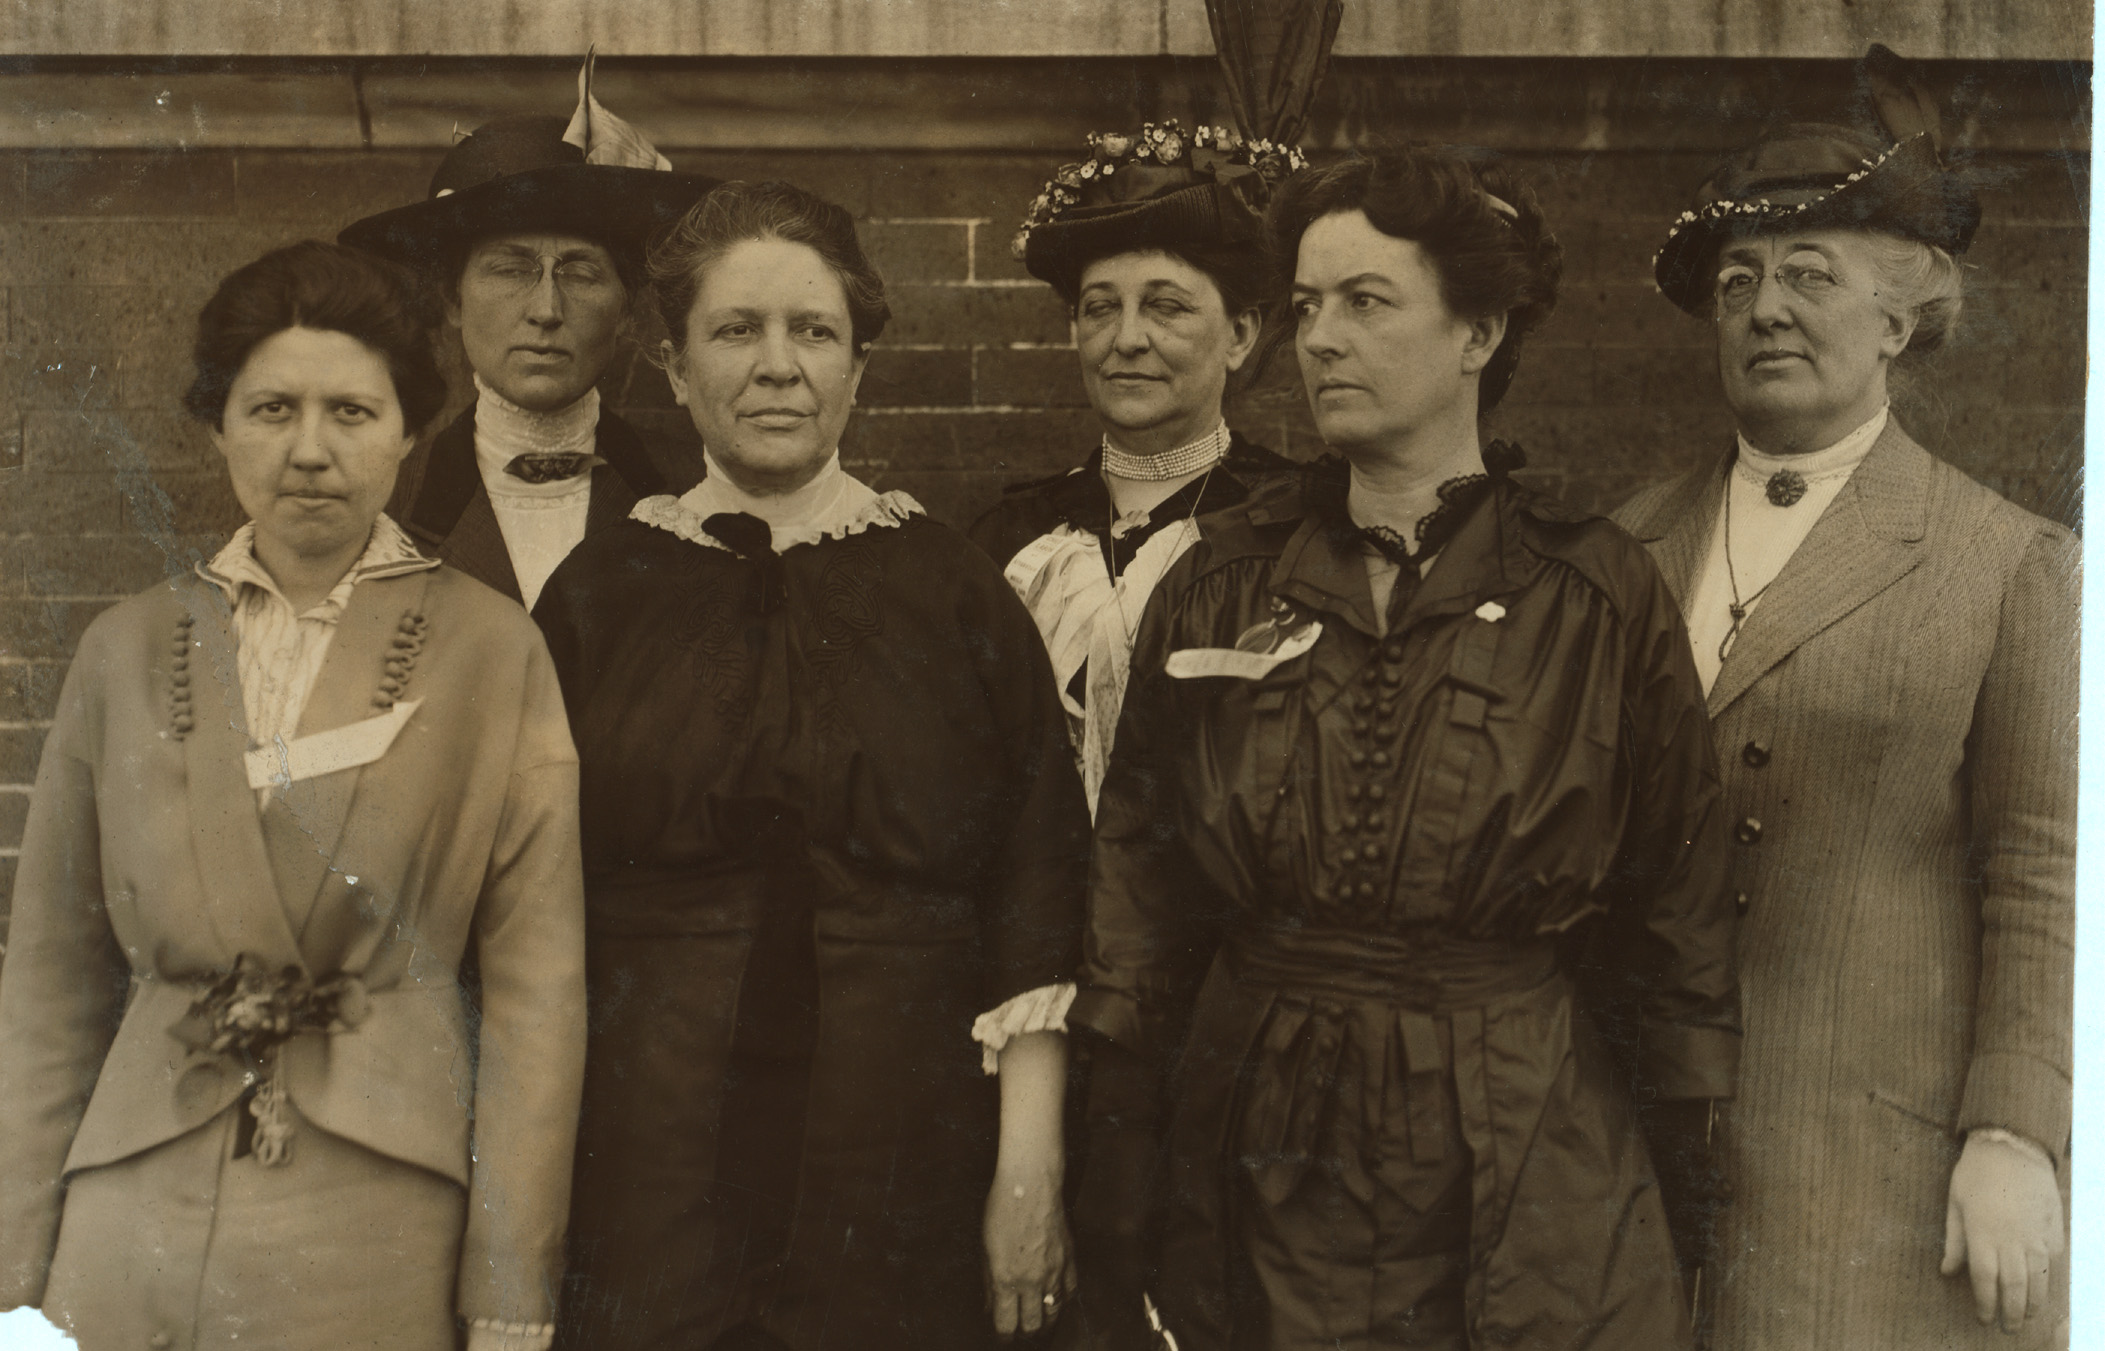 florence kelley child labor A child labor reform movement, led by florence kelley, jane addams, and aided by women's clubs and civic organizations, is credited with correcting deficiencies in then existing statutes, and.